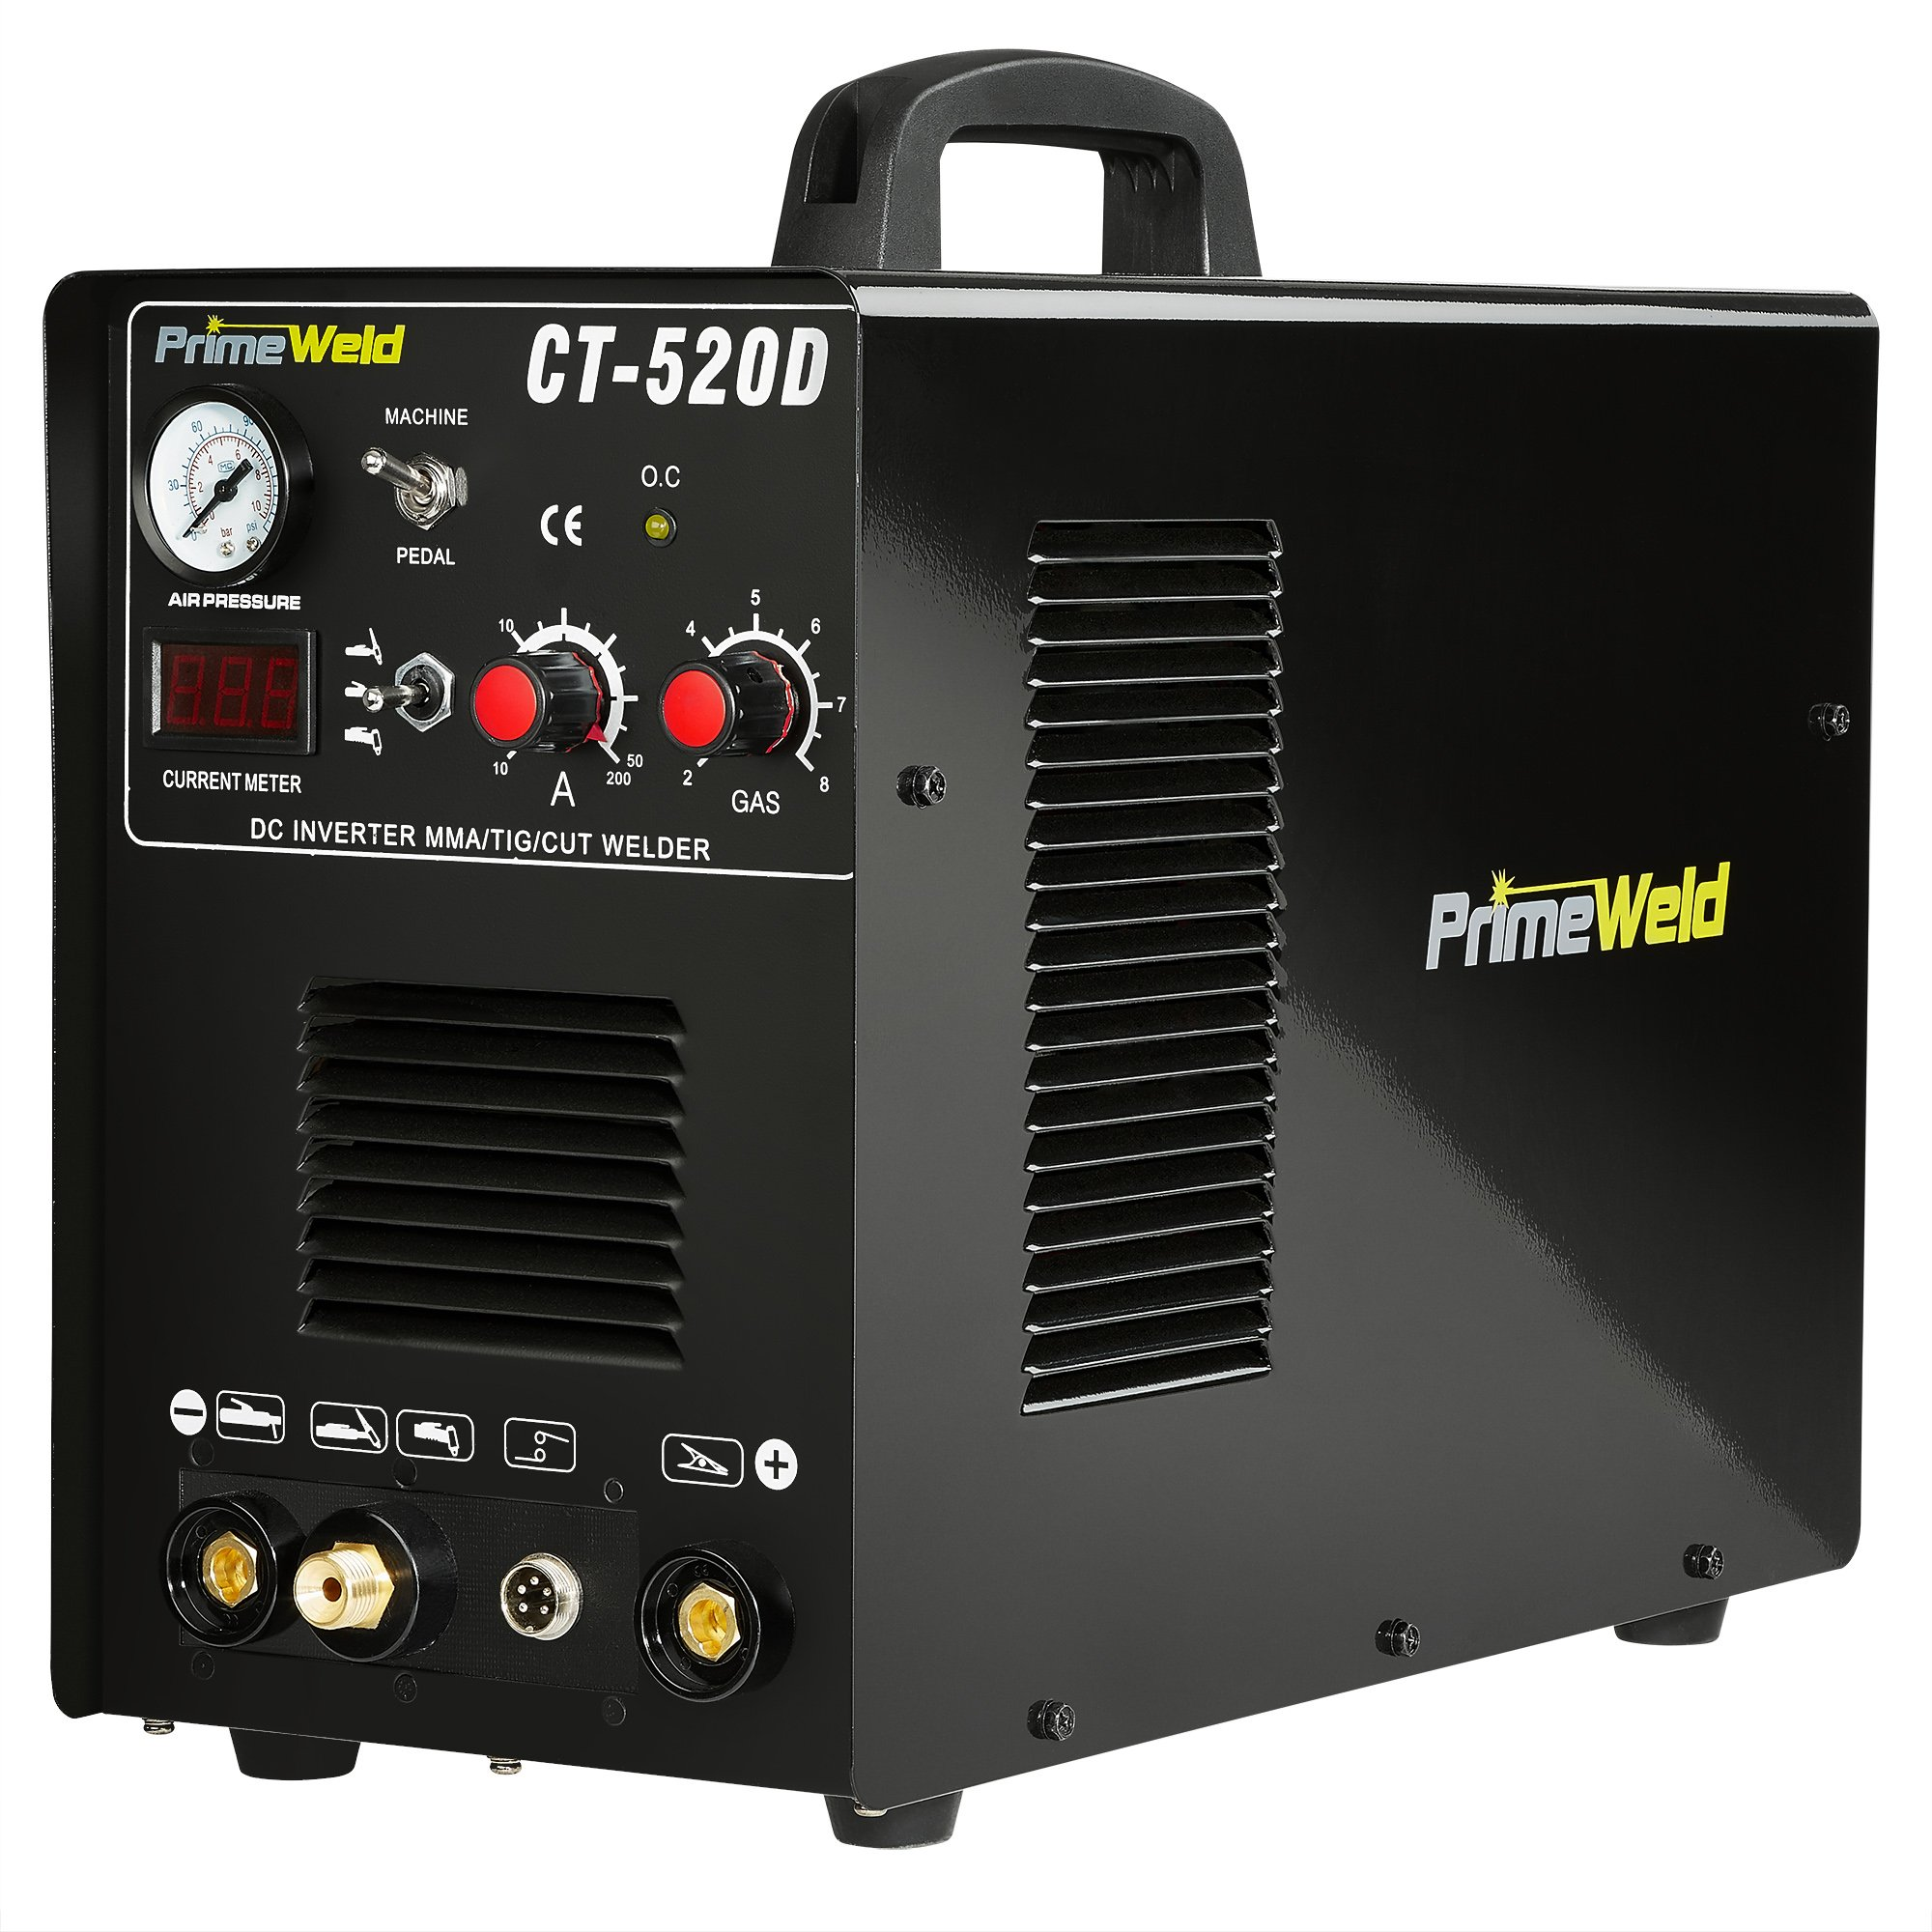 PrimeWeld Ct520d 50 Amps Plasma Cutter, 200 Amps Tig Welder and 200 Amps Stick Welder Combo by PRIMEWELD